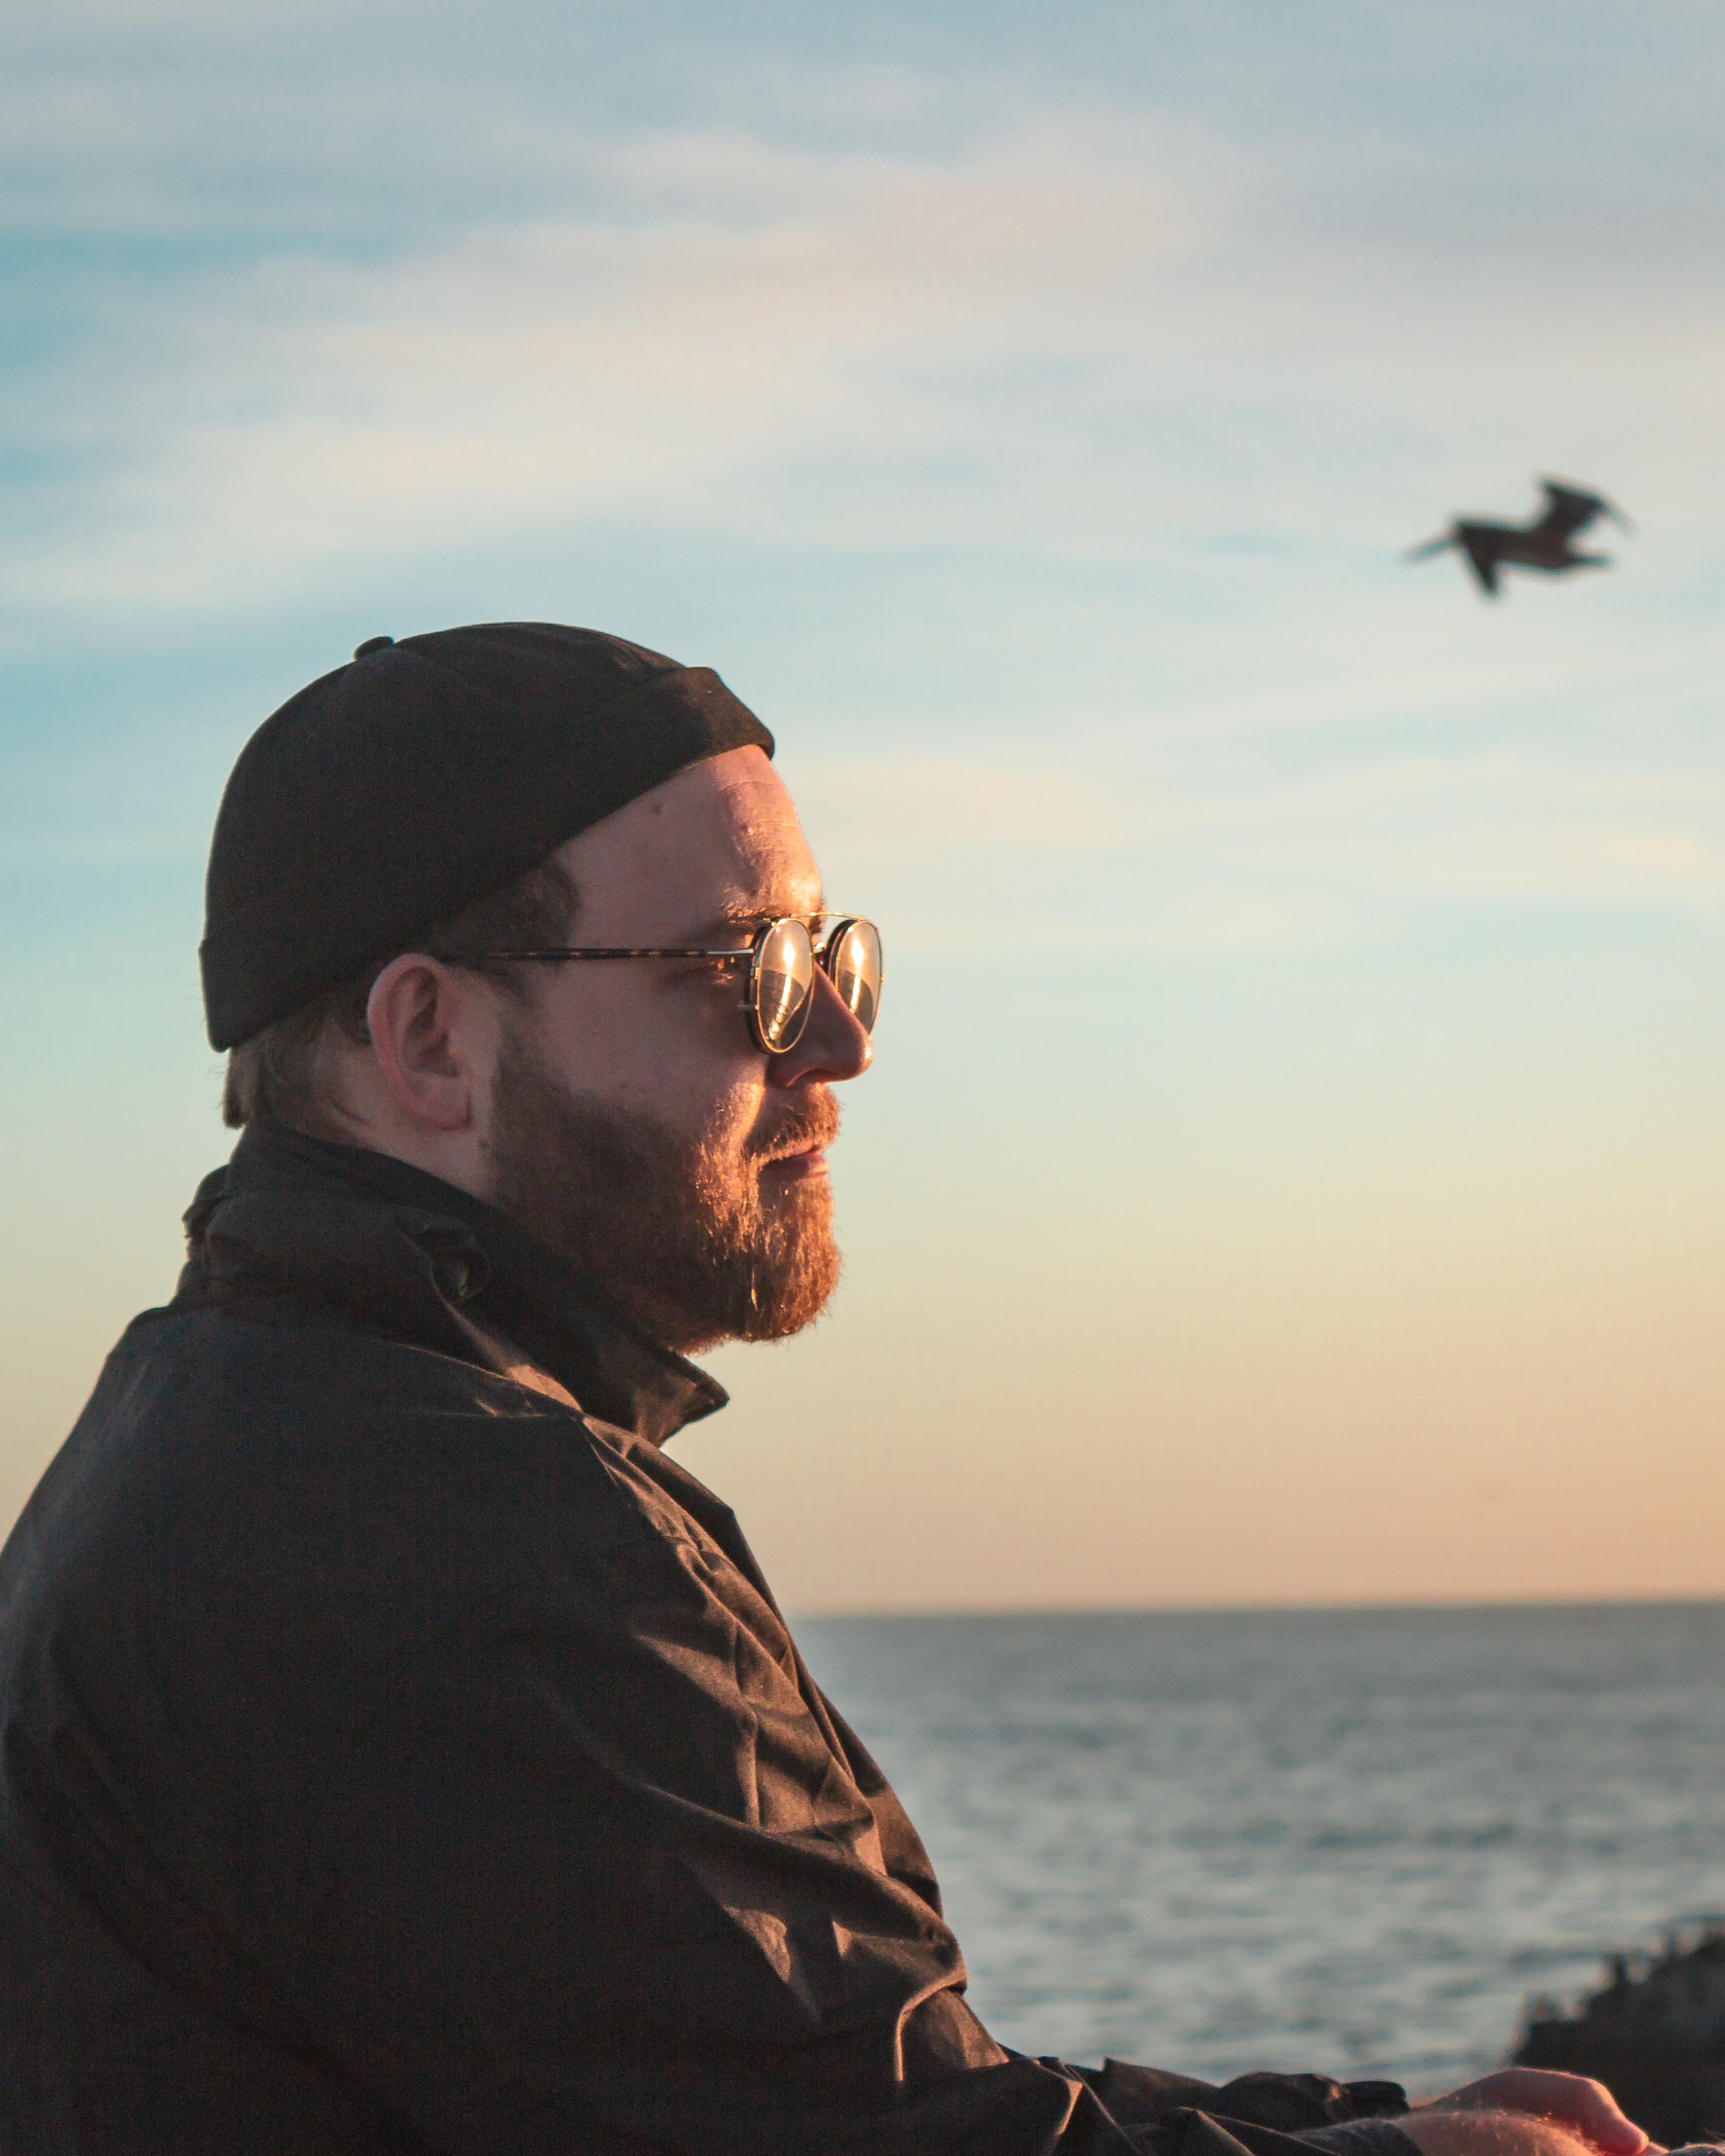 man wearing black knit cap overlooking on sea